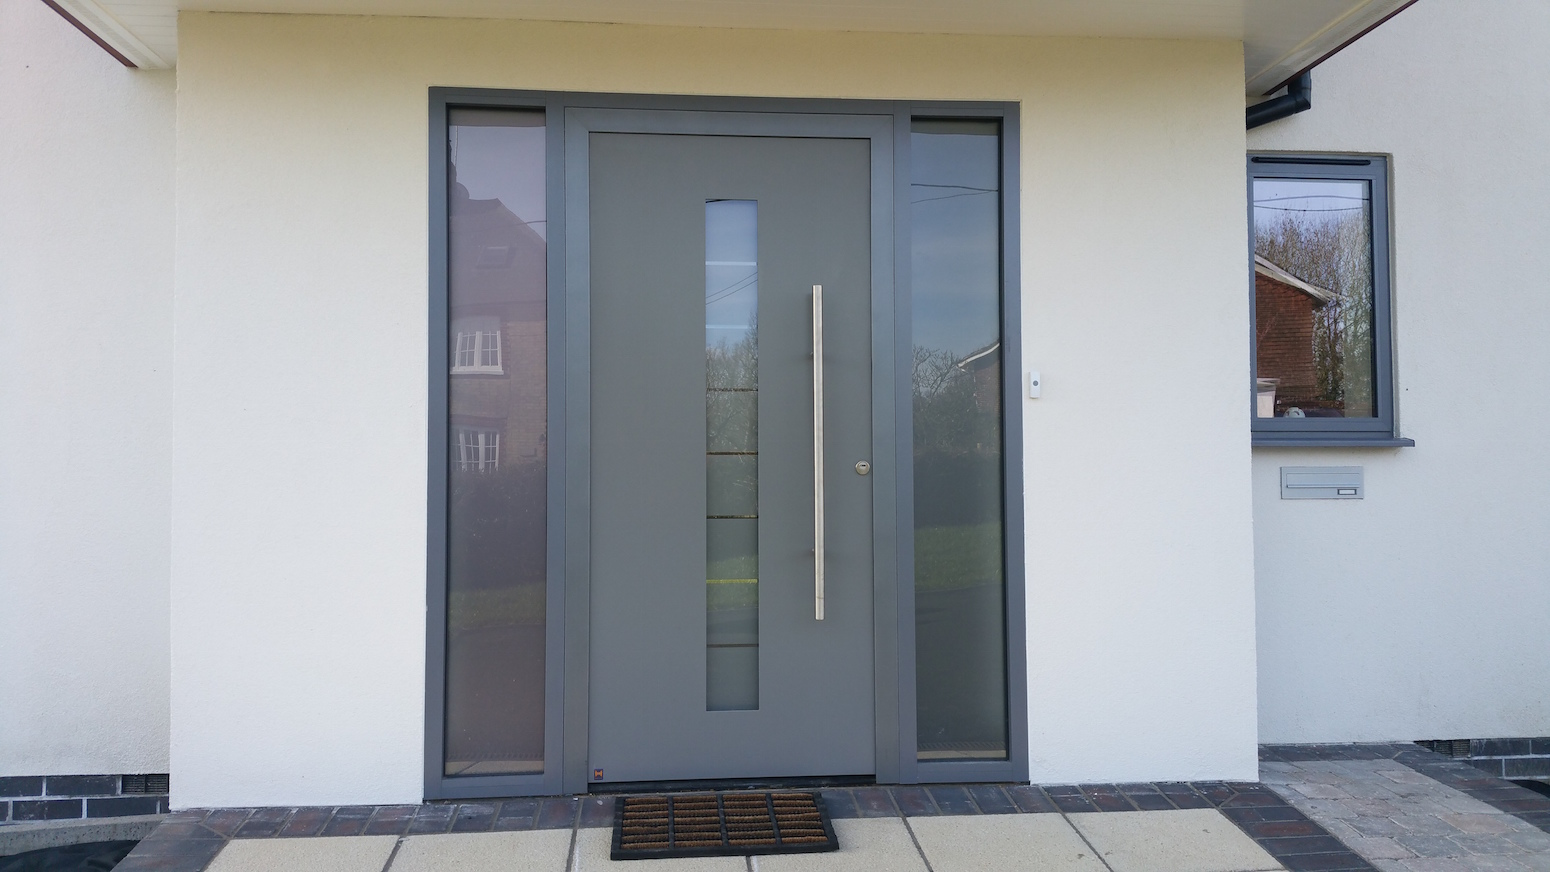 Dwl installers of hormann front doors in south east dwl for Glass door in front of exterior door